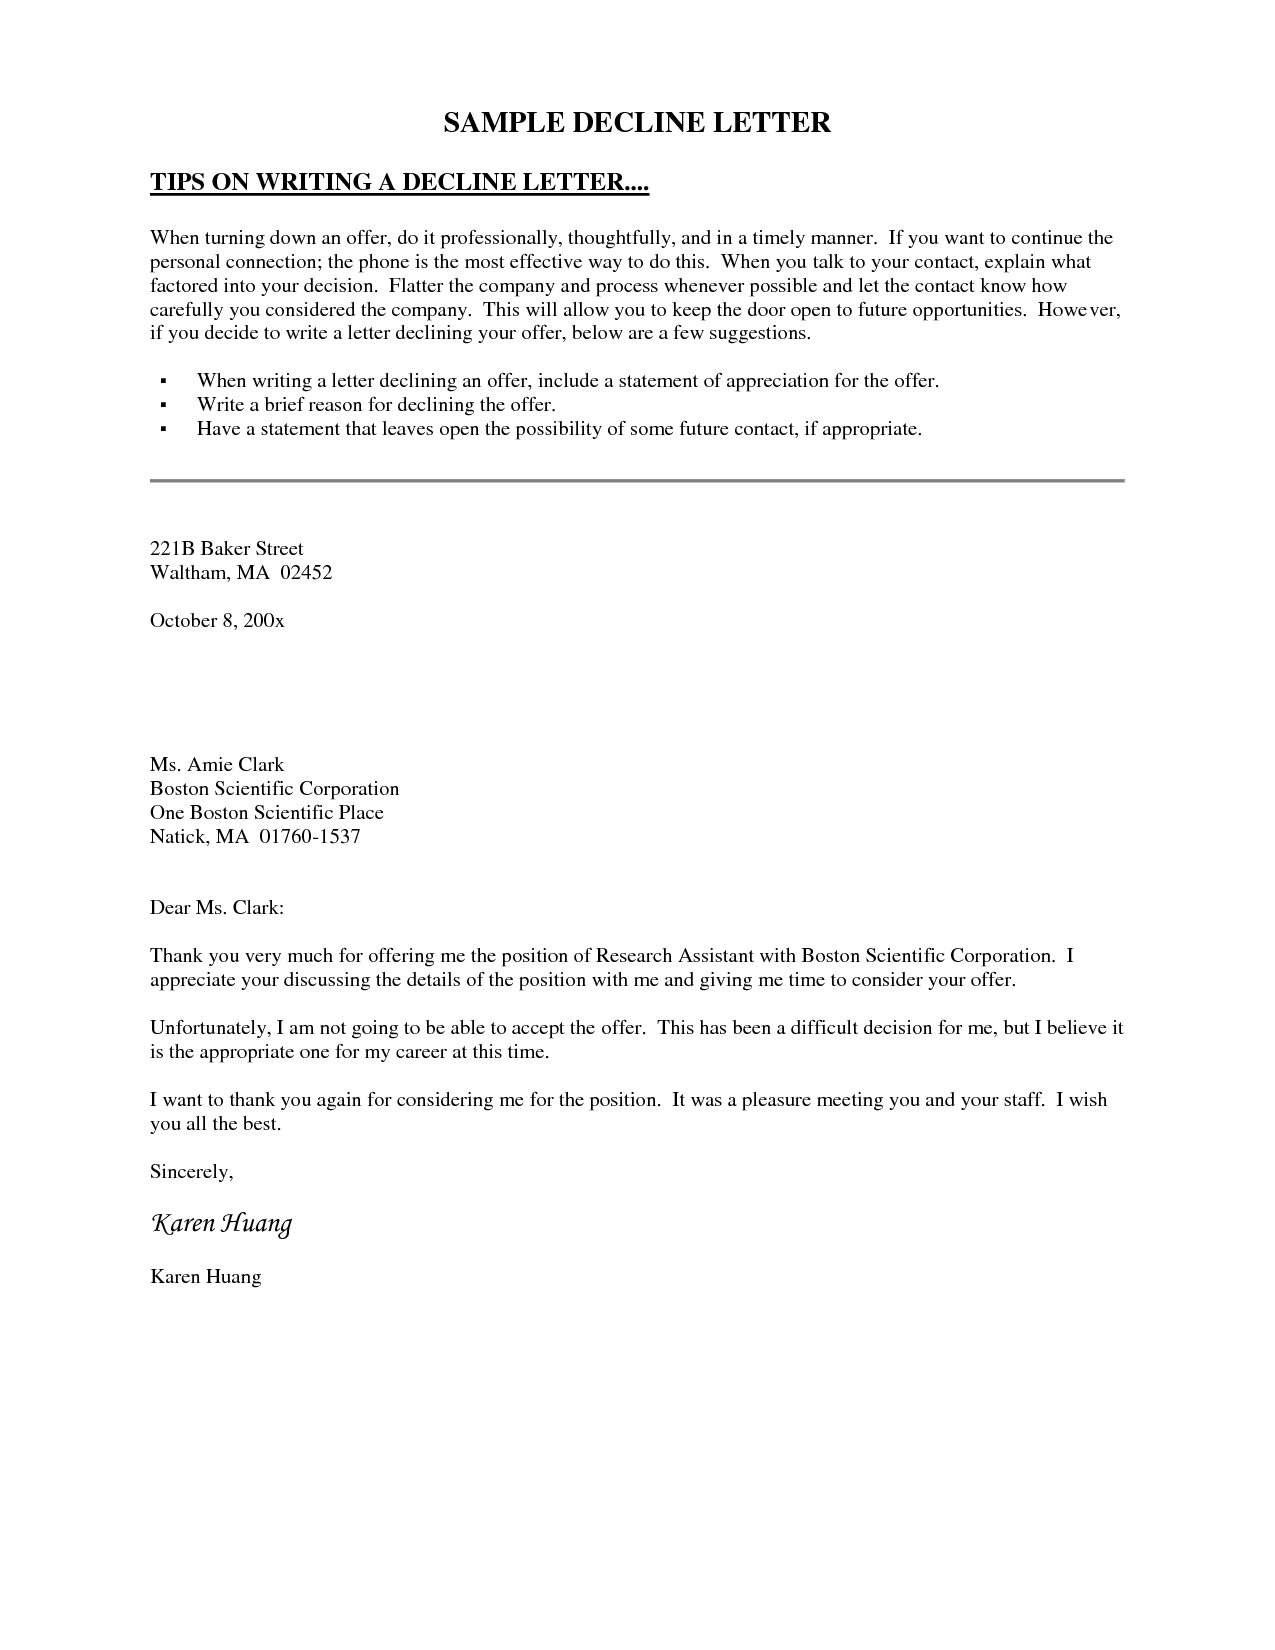 board member invitation letter template example-Decline Invitation Letter This letter template declines an invitation to serve on an organization s board of directors due to other mitments 6-l